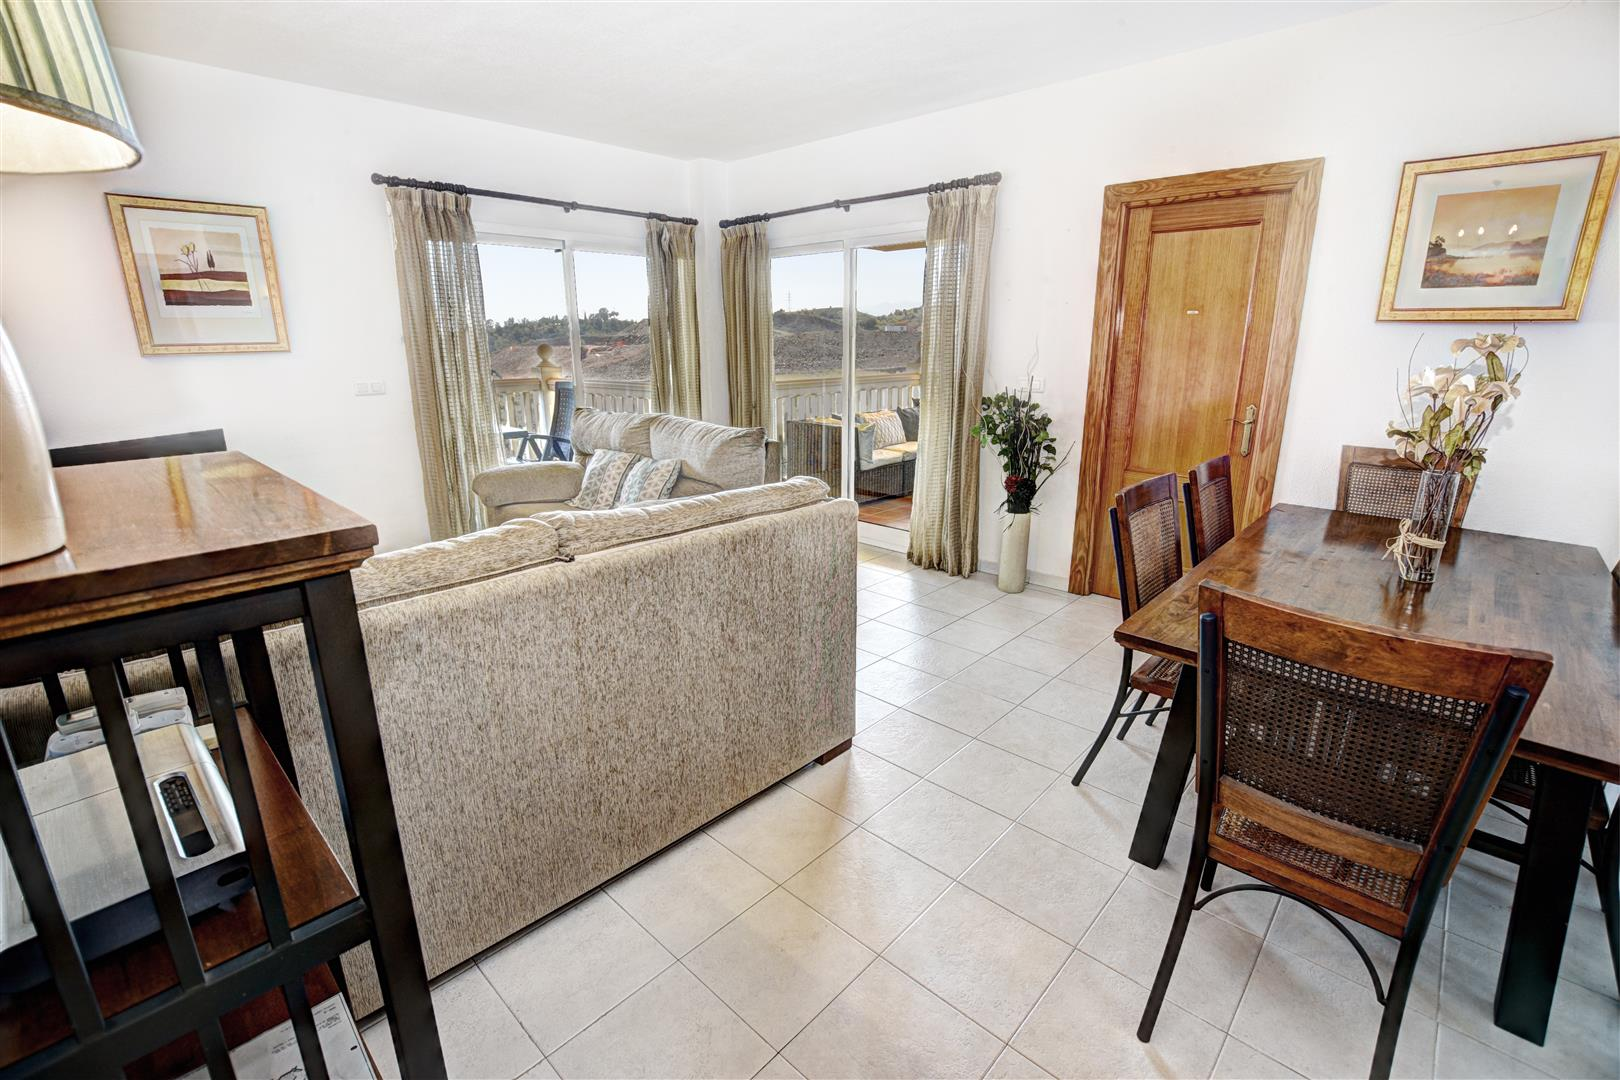 2 Bed Apartment for sale in Reserva del Higueron 060_1_2_3_4_5 (Large)